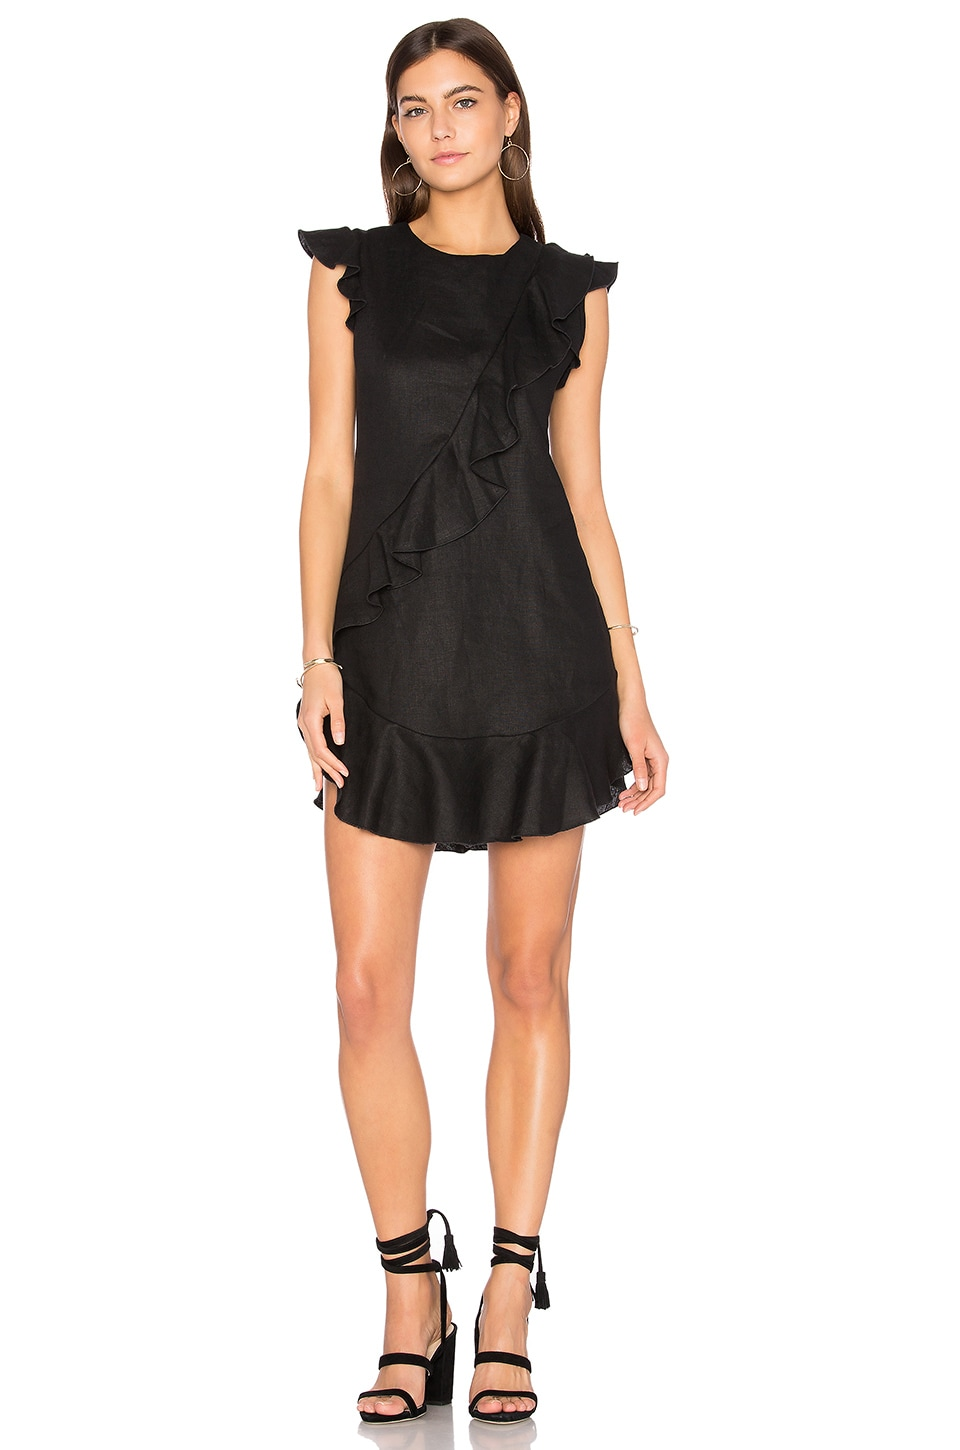 Anthony Ruffle Mini Dress by Karina Grimaldi